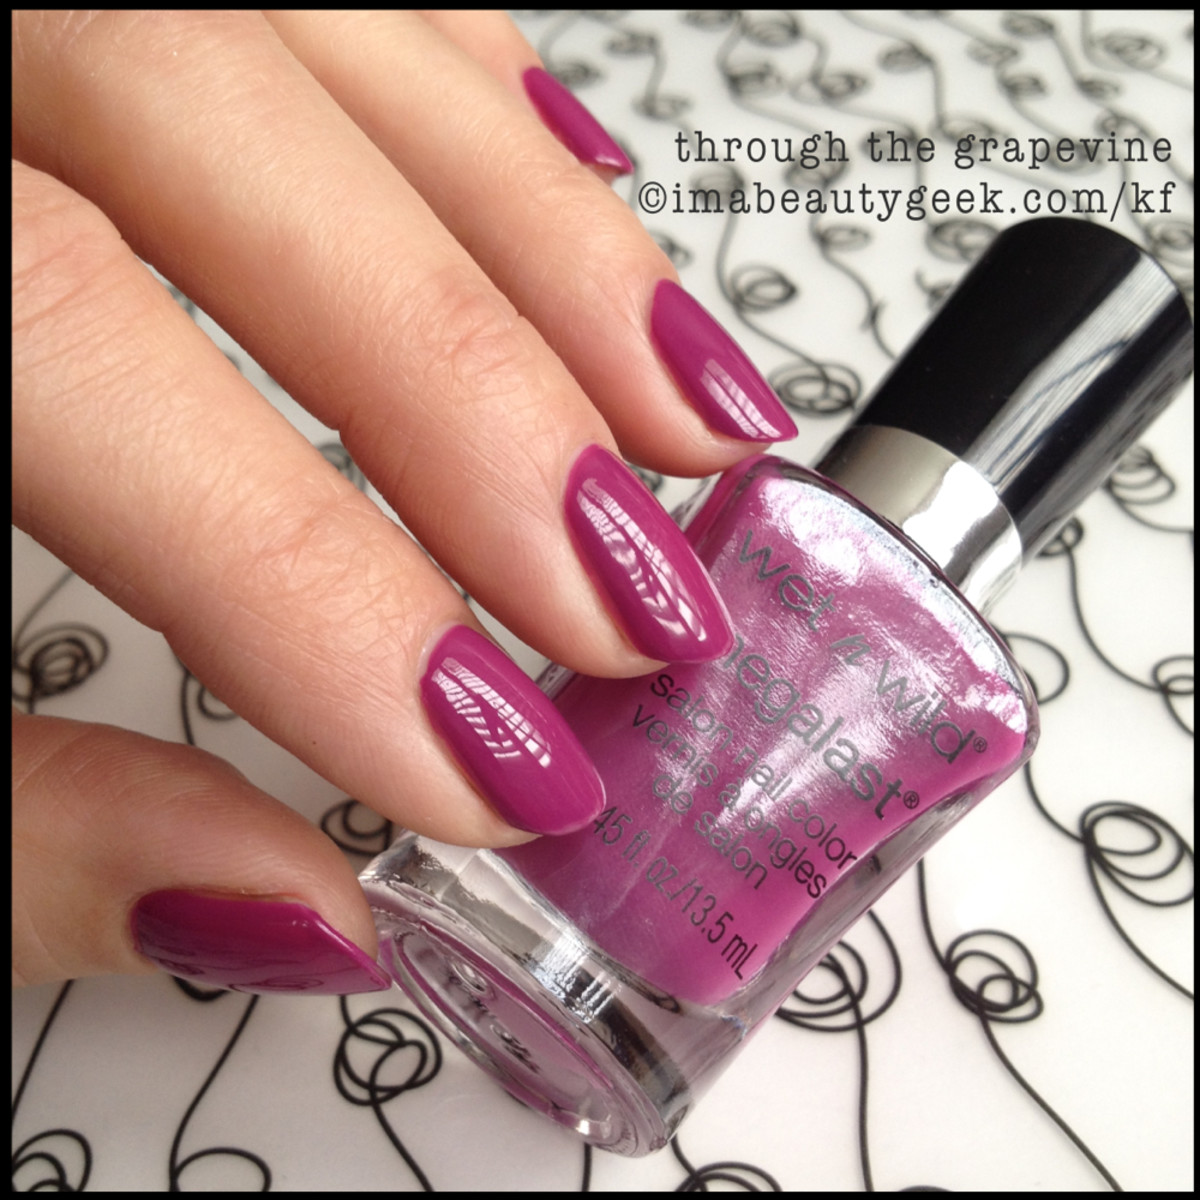 Wet n Wild Polish Through the Grapevine